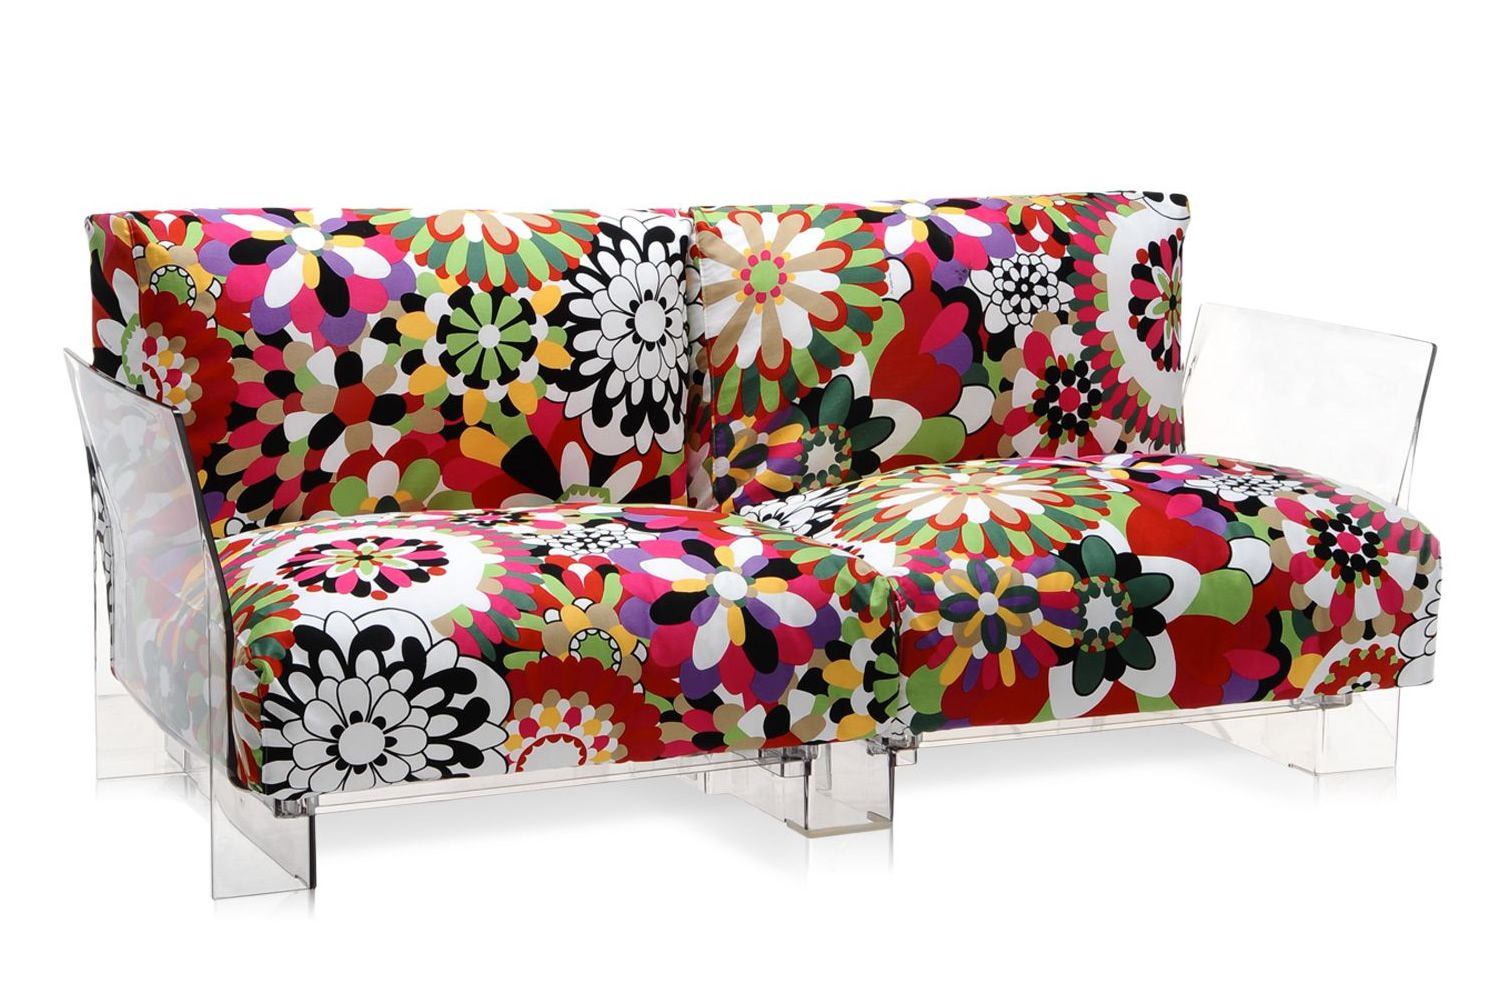 pop missoni sofa design sofa kartell  or  seats with  -  pop missoni sofa   seater sofa with transparent polycarbonatestructure and cushions covered in red